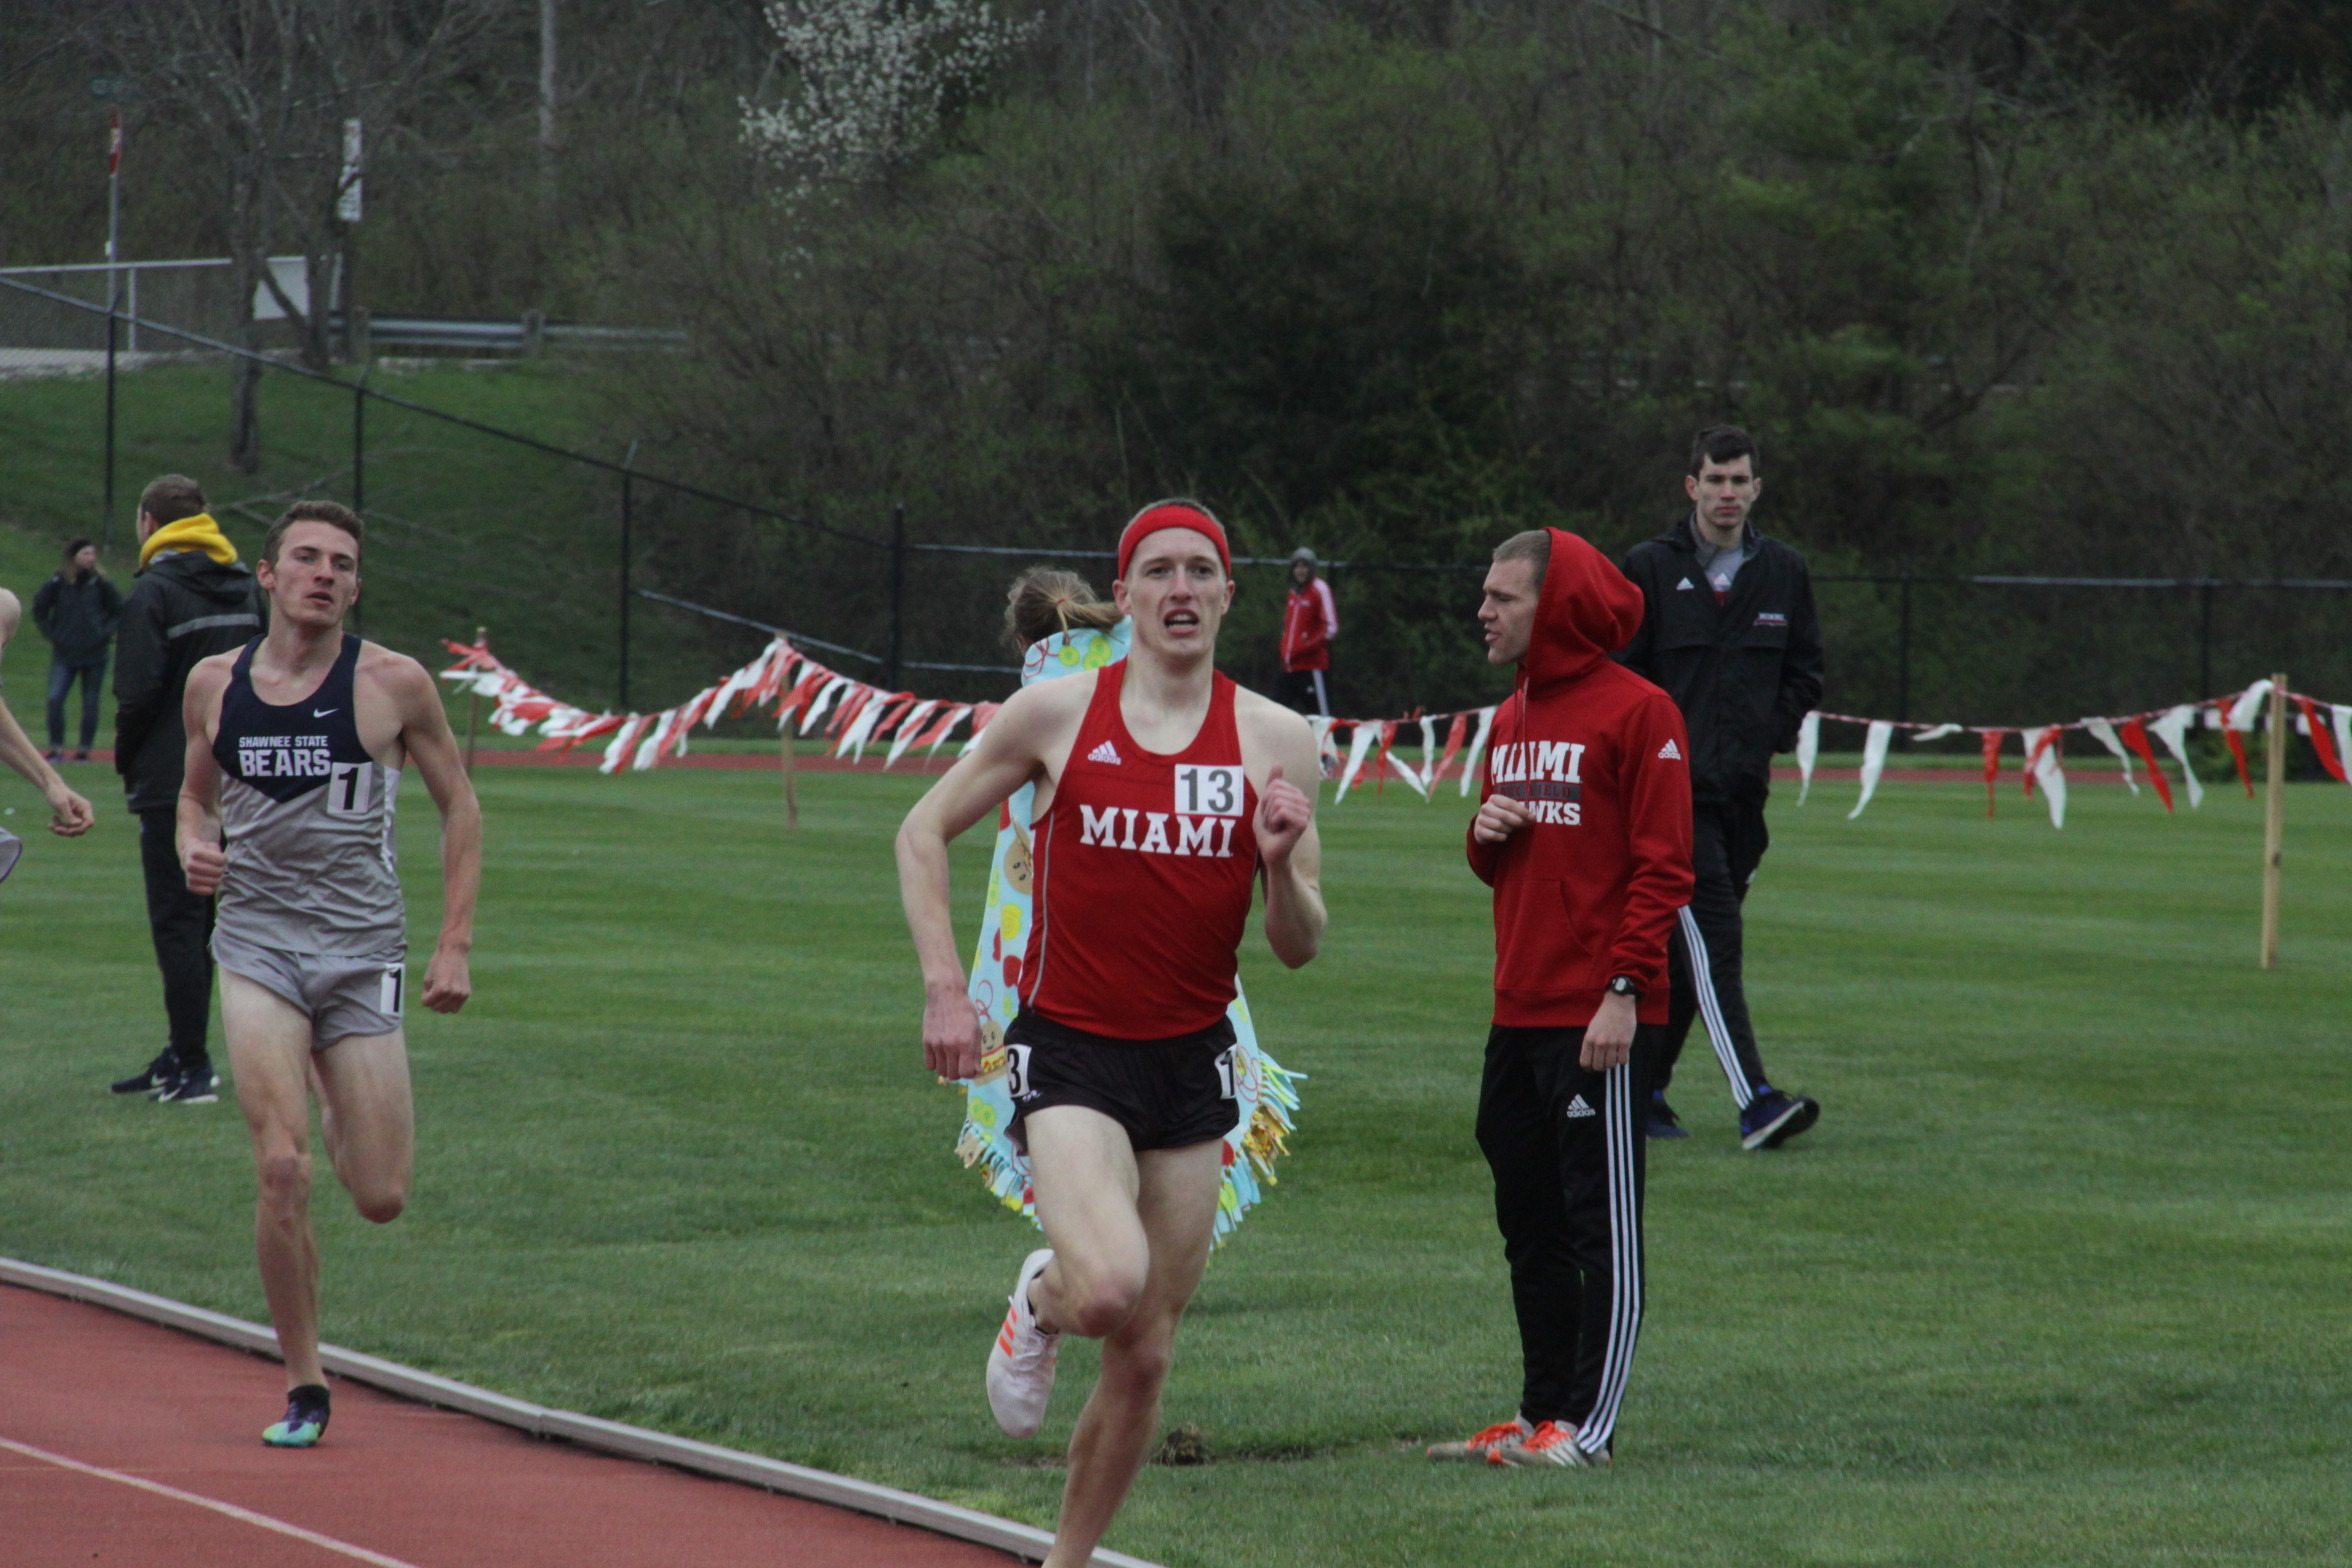 Track & Field, Cross Country 4/8/2017 12:00:00 AM. '